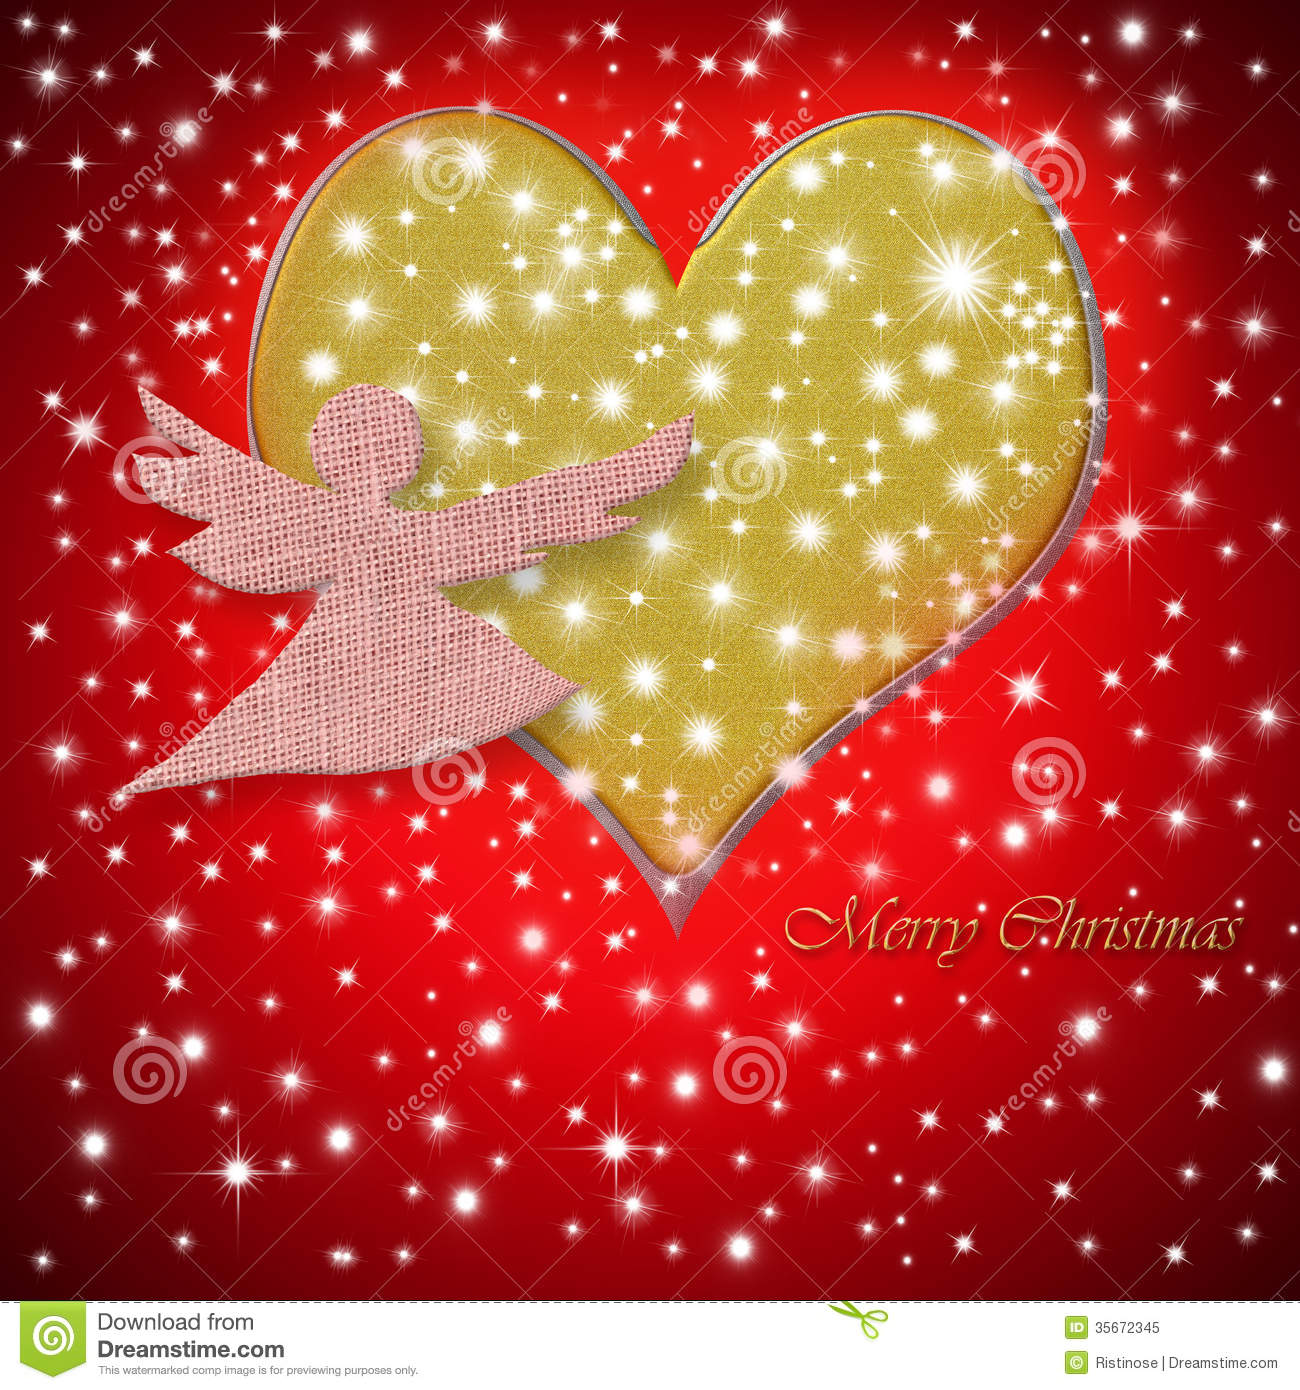 Merry Christmas Greeting Card Heart And Angel Stock Image - Image of ...